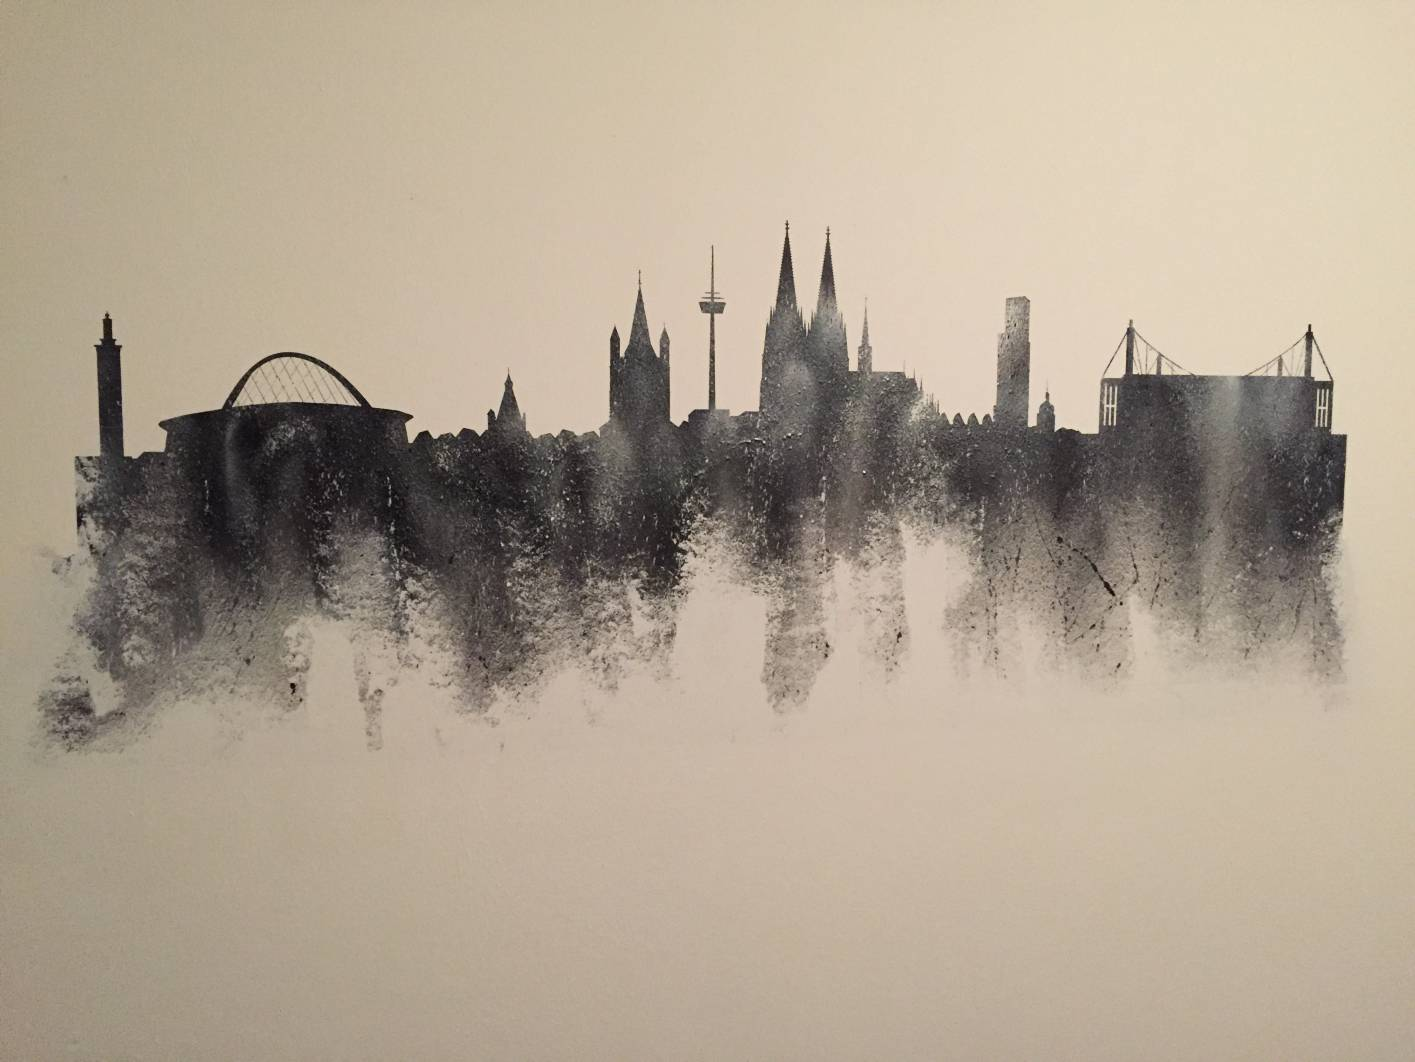 Köln Skyline Graffiti by Don Fu